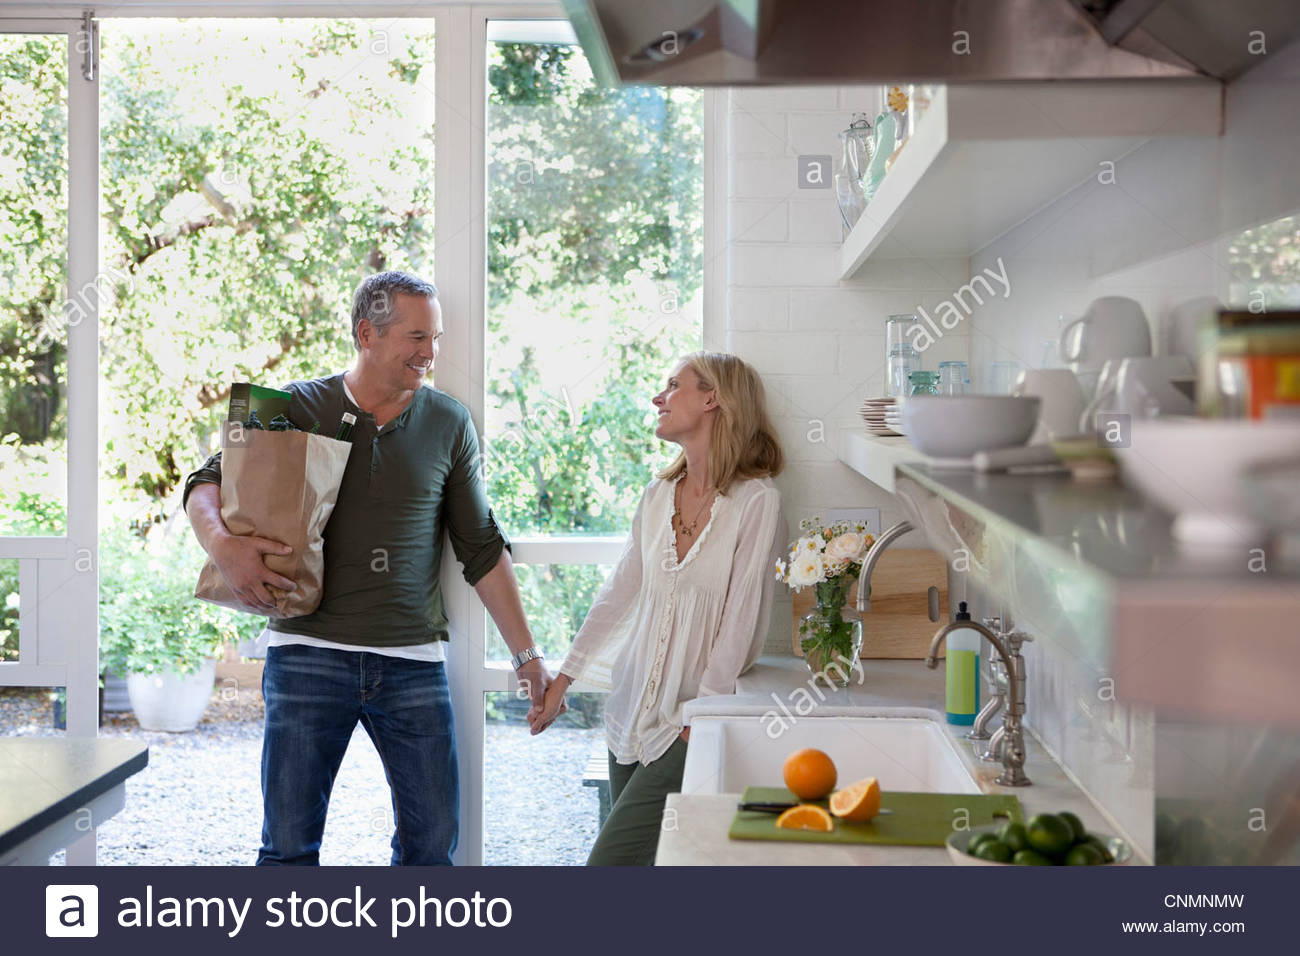 Couple holding hands in kitchen Photo Stock